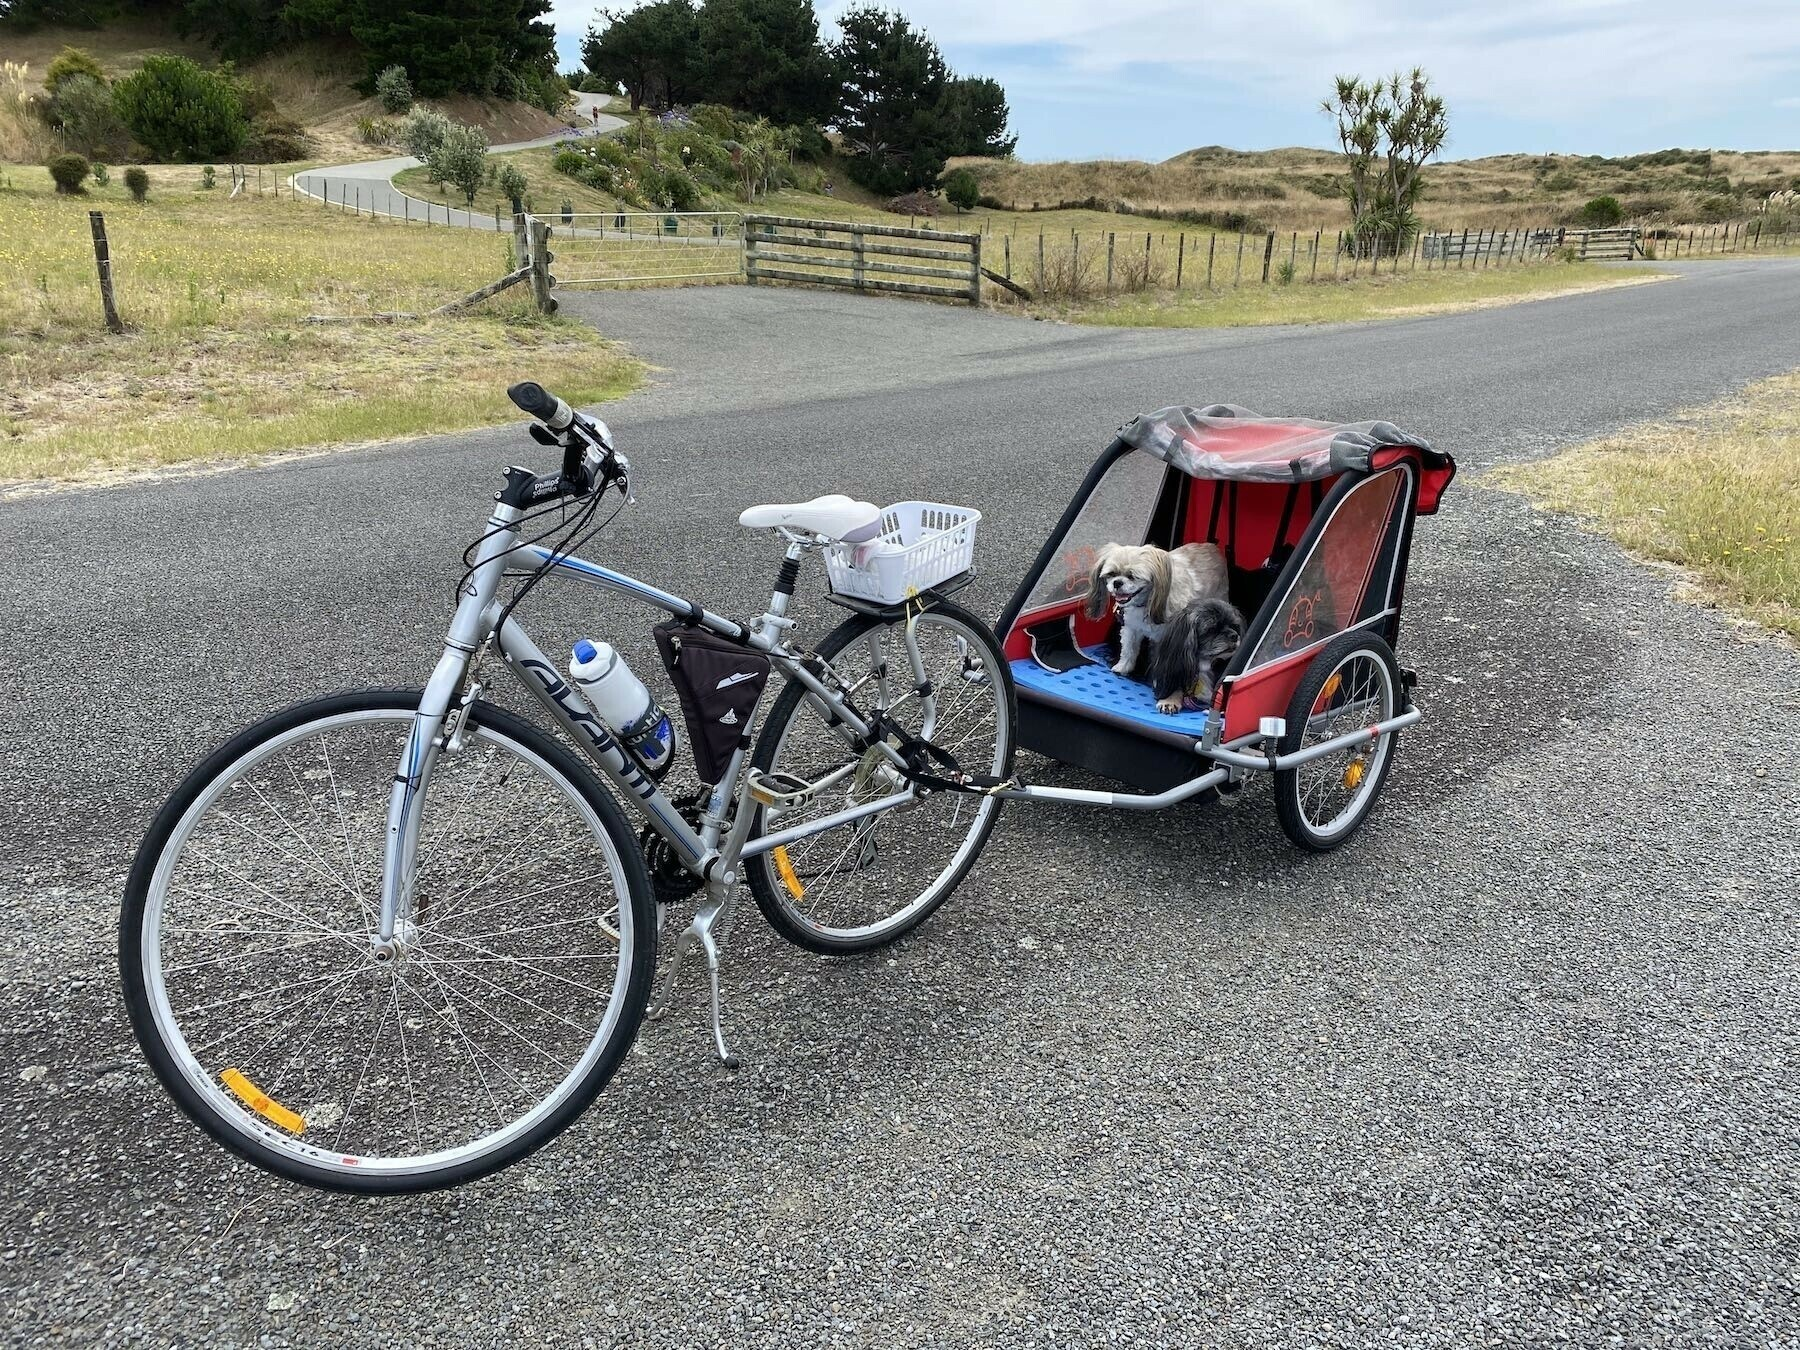 Older Avanti bike with dogs in attached trailer.